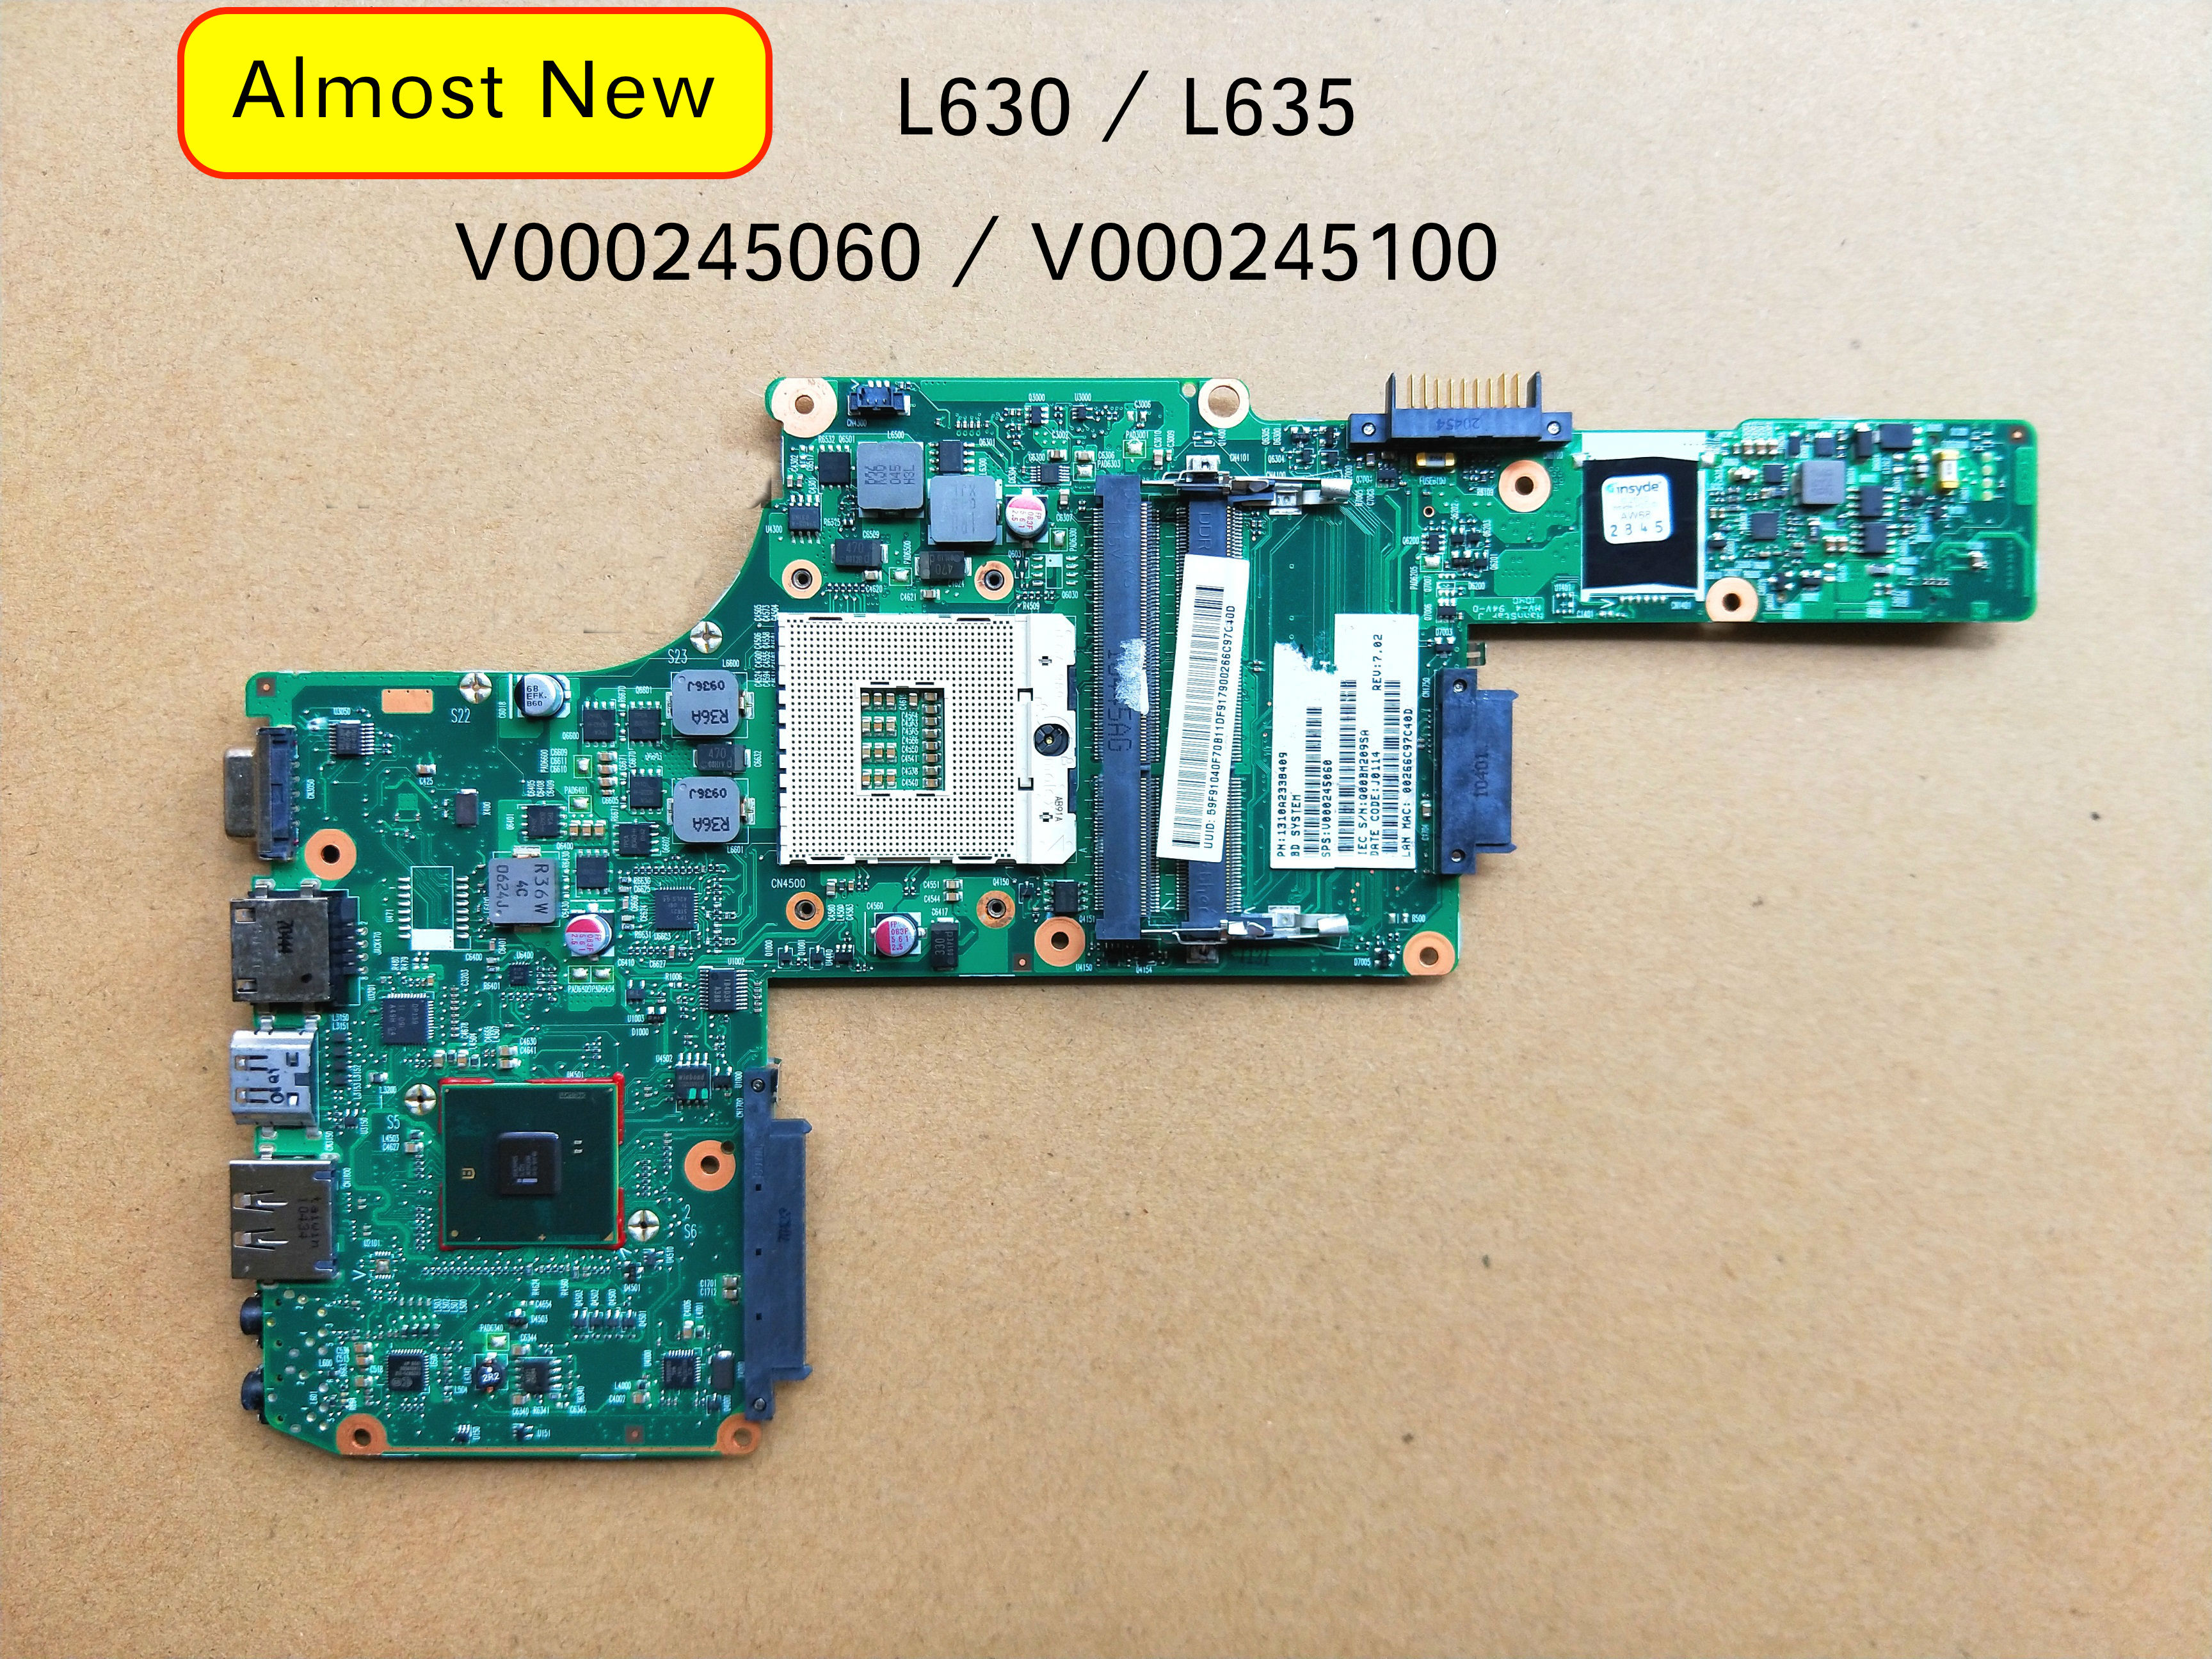 Working Perfectly For TOSHIBA Satellite L630 L635 Laptop Motherboard V000245060 V000245100 1310A2338409 6050A2338402